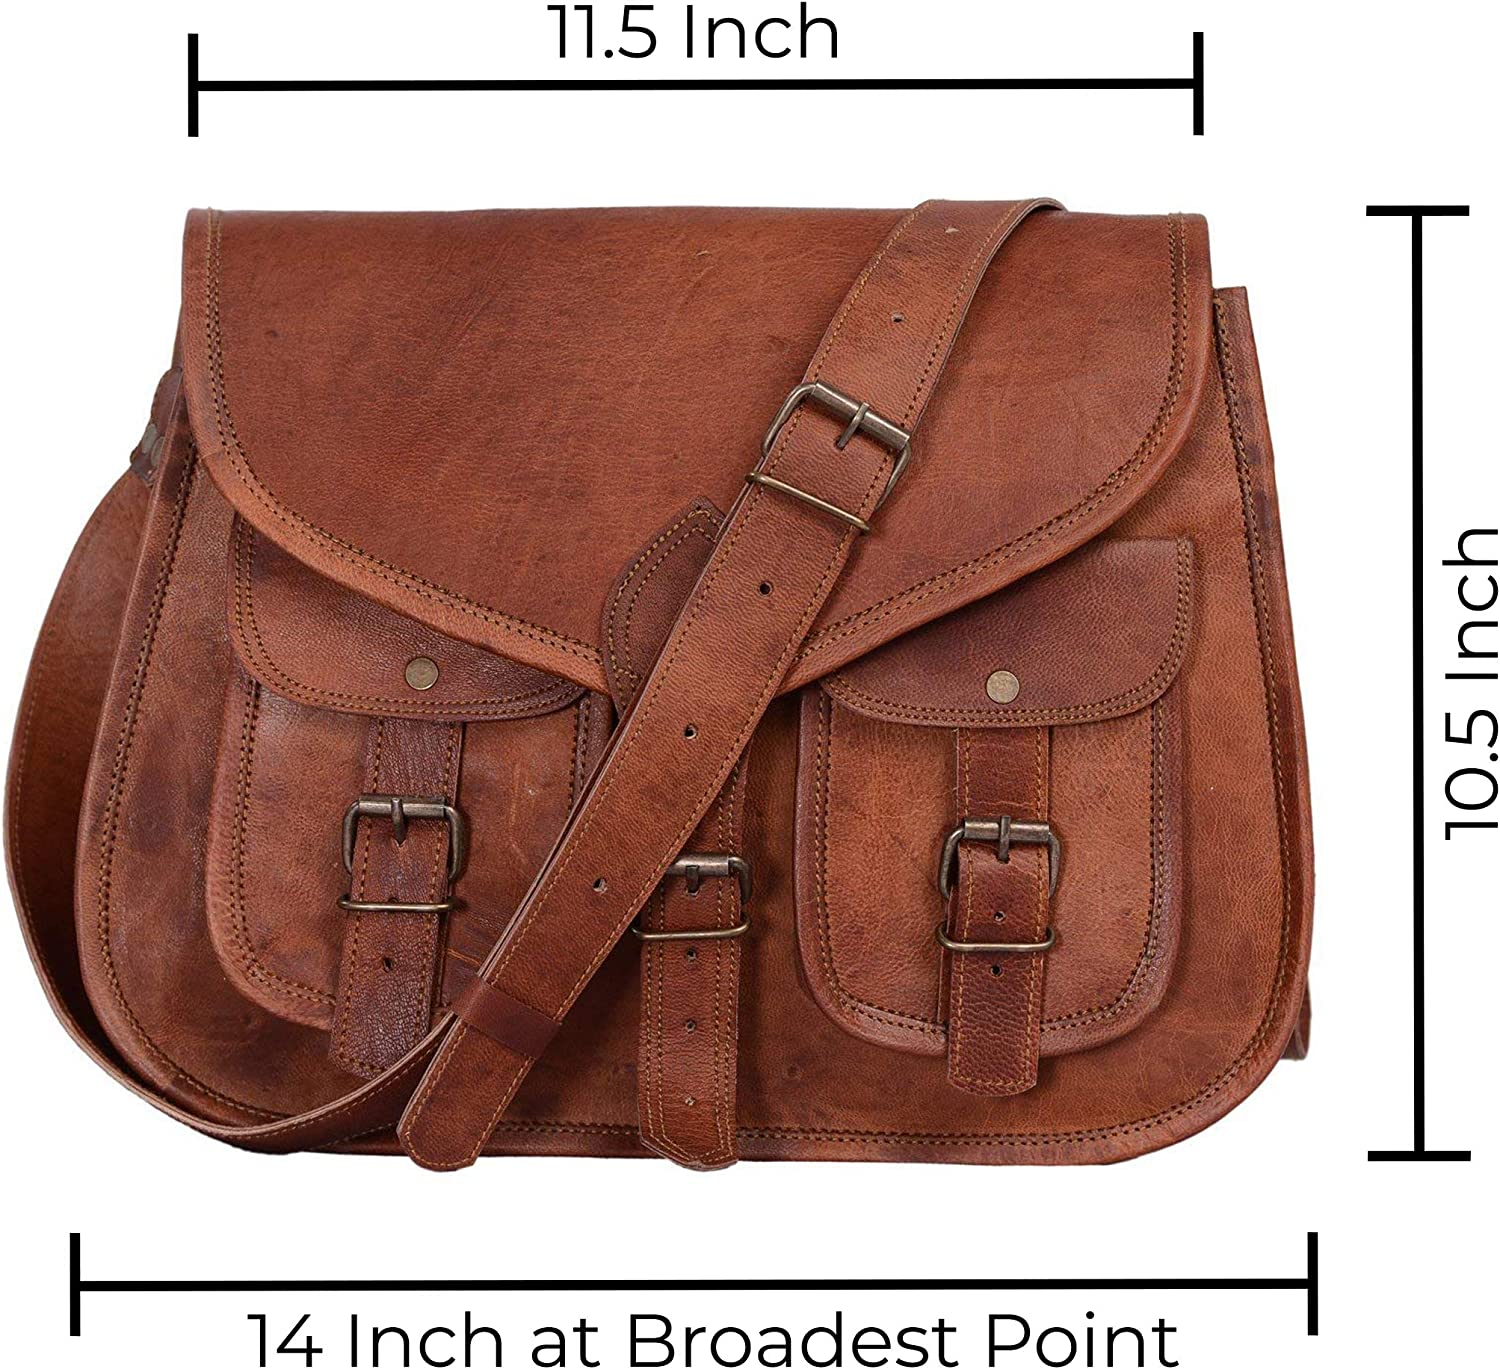 Leather Bags Now 13 Leather Sling Women Handbag Leather Cross body Shoulder Satchel Travel Handbag Women Bag